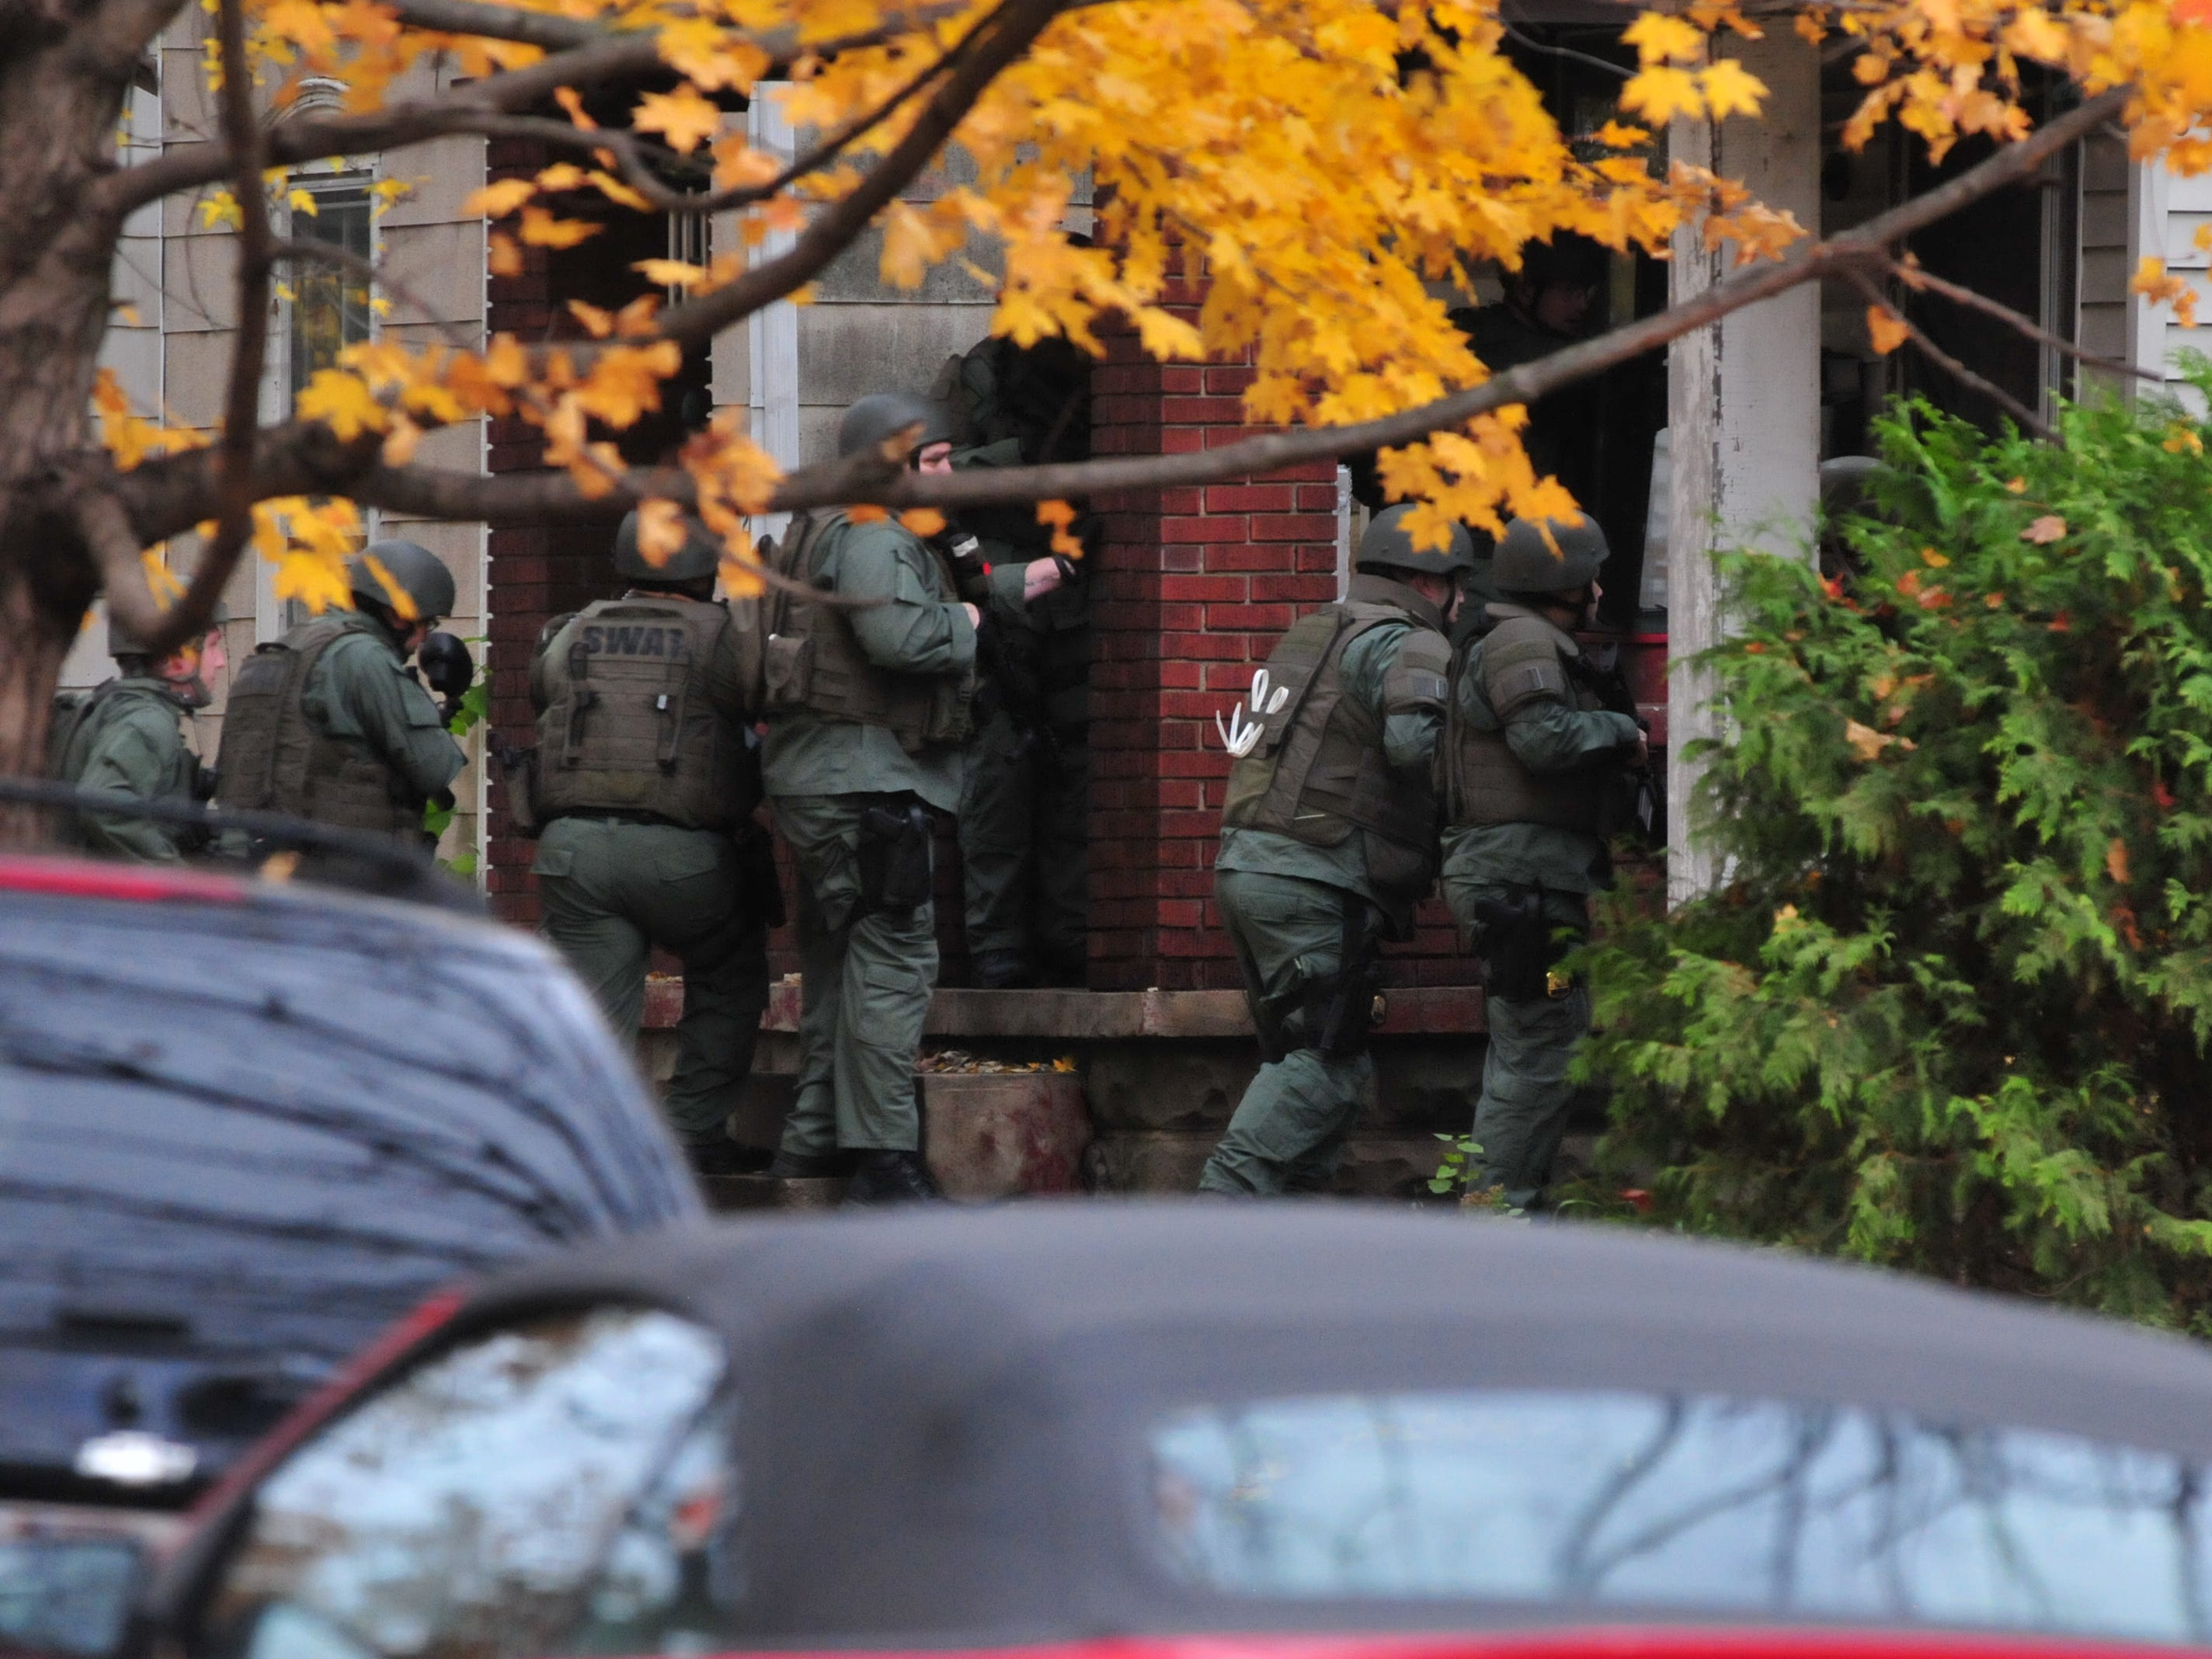 SWAT team members gather outside 219 N. 16th St. about 12:30 p.m. Monday.